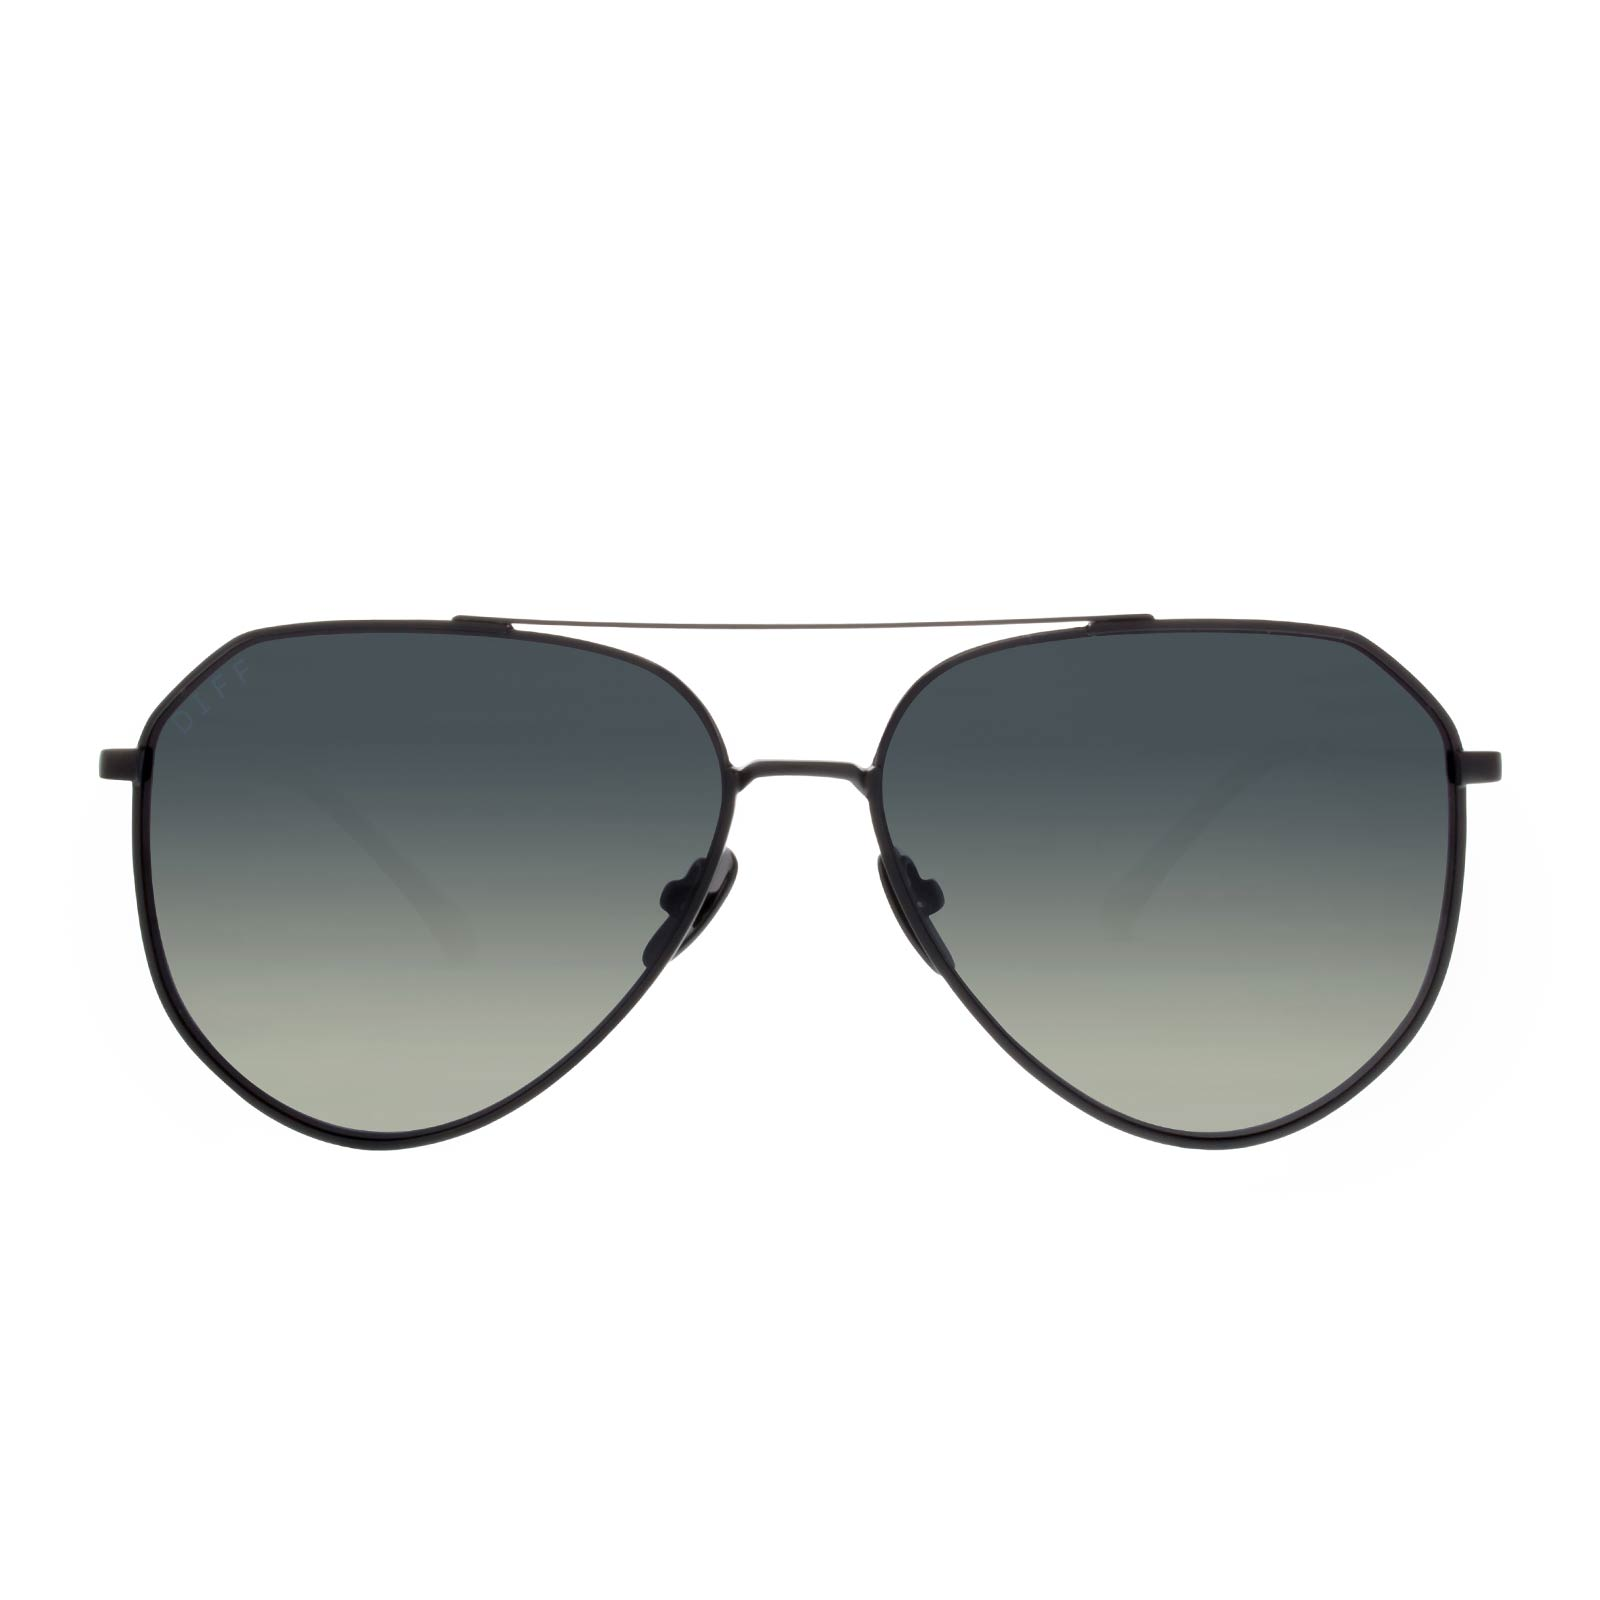 DASH - BLACK + GREY GRADIENT + POLARIZED